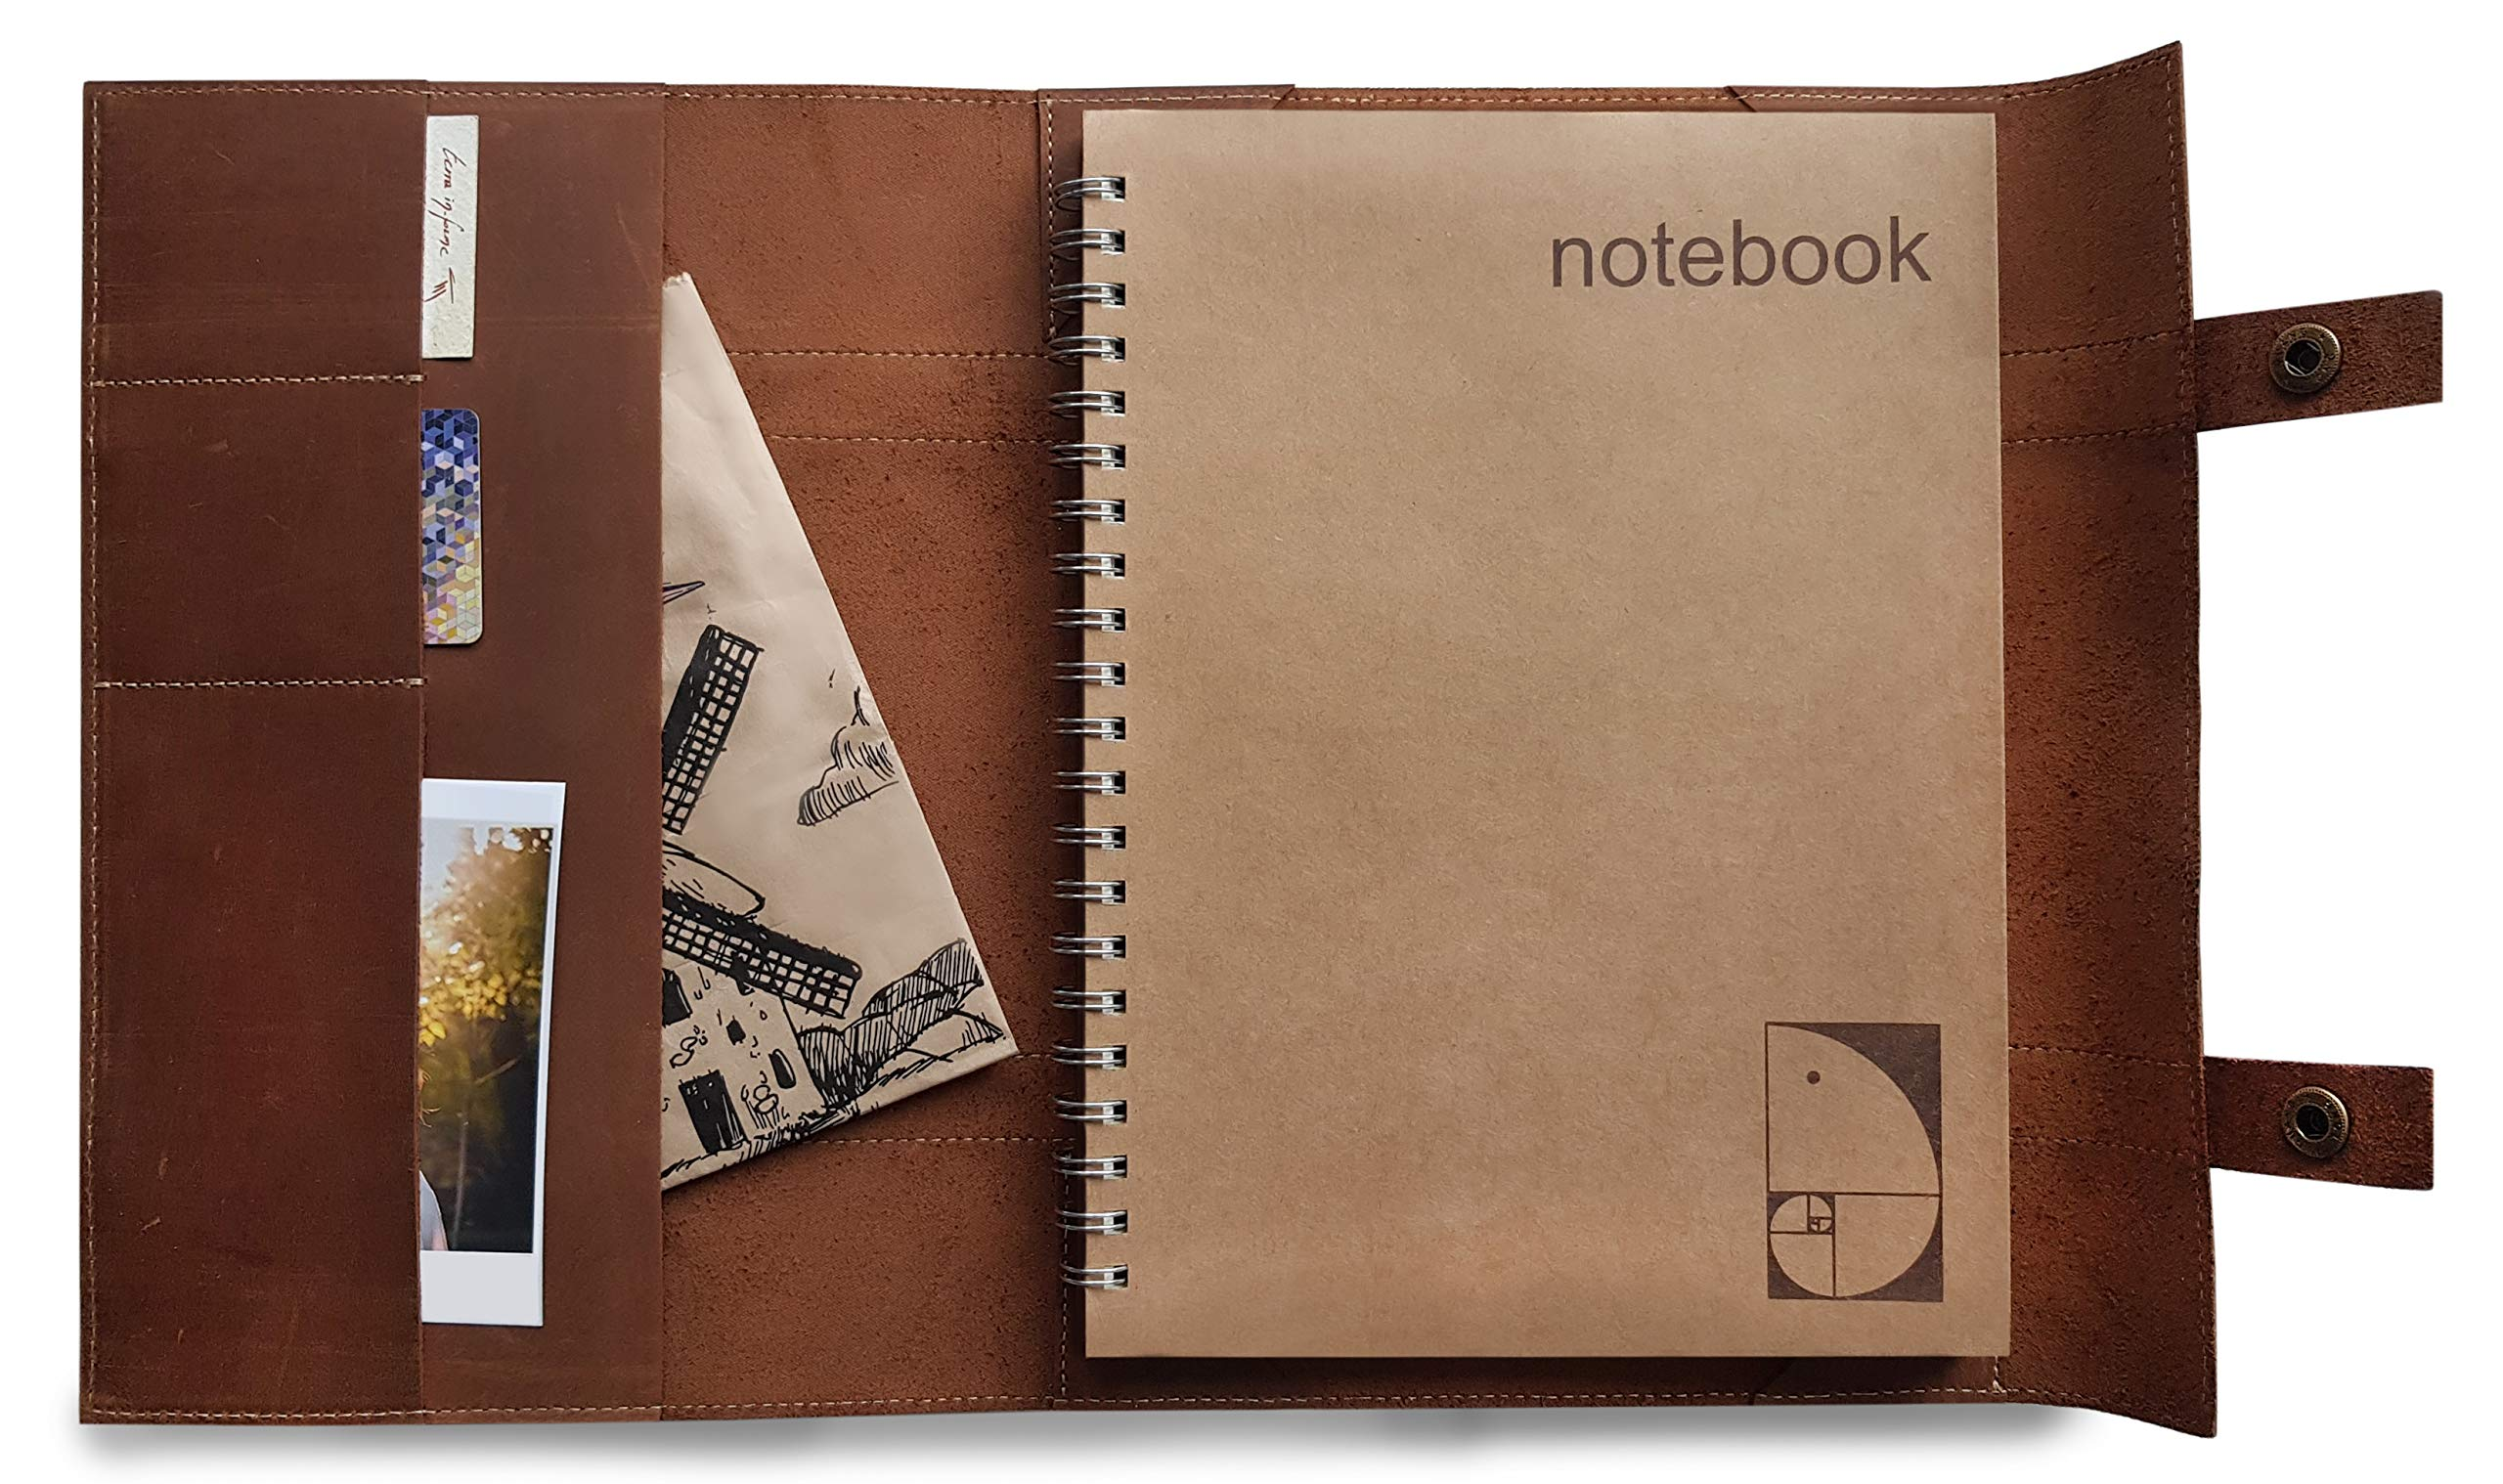 le vent 8x11 large refillable genuine leather journal, business portfolio   padfolio folder with lay flat A4 dot grid spiral notebook 200 pages, fits steno and memo pads